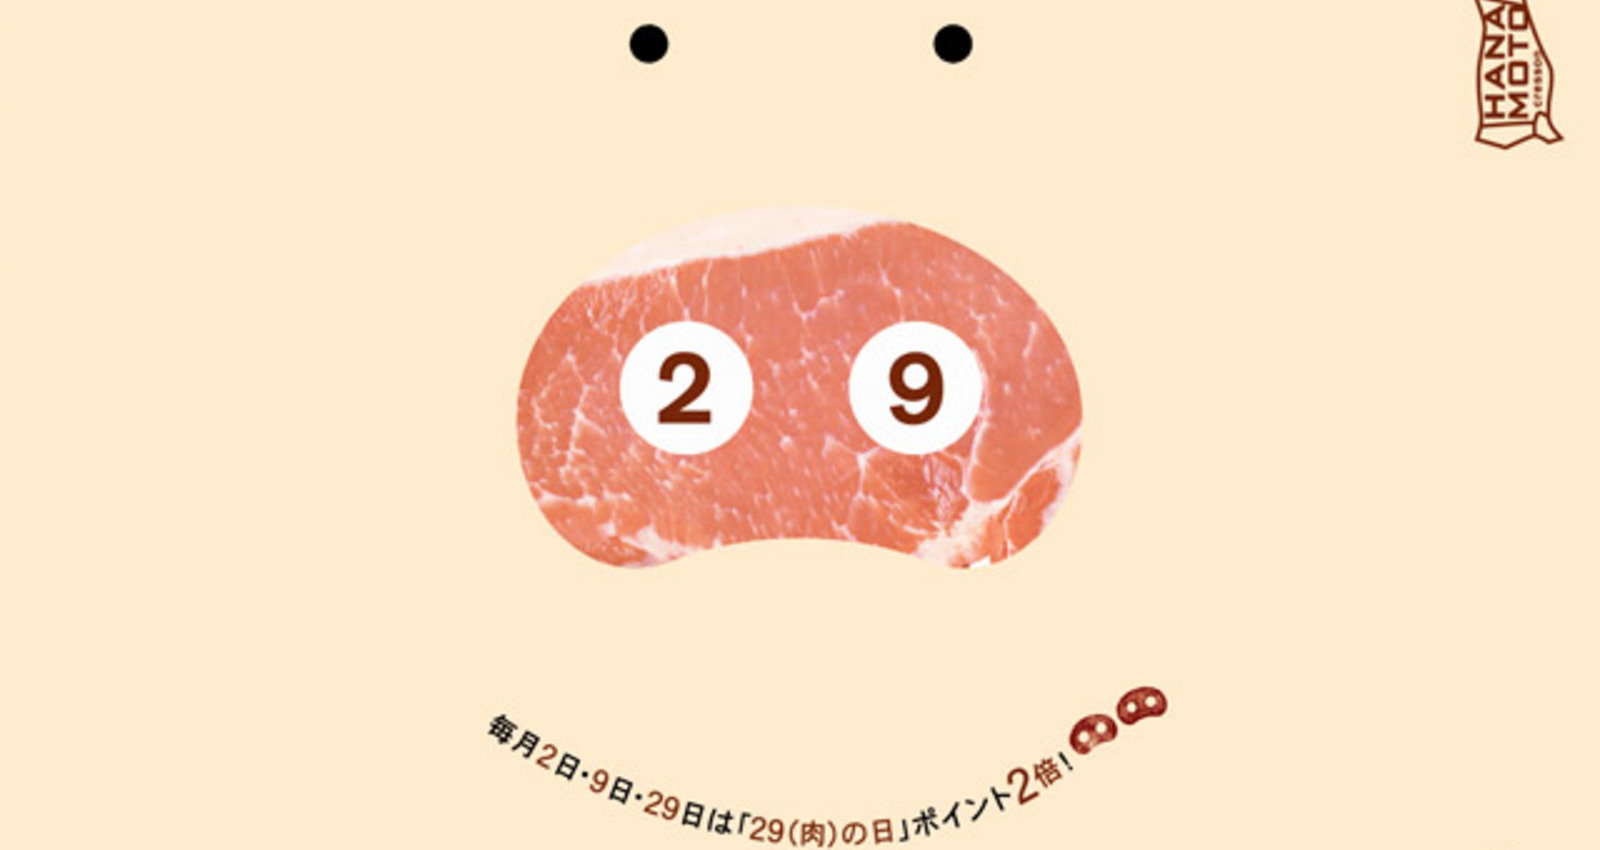 Hanamoto 29 (Meat Day) No.1